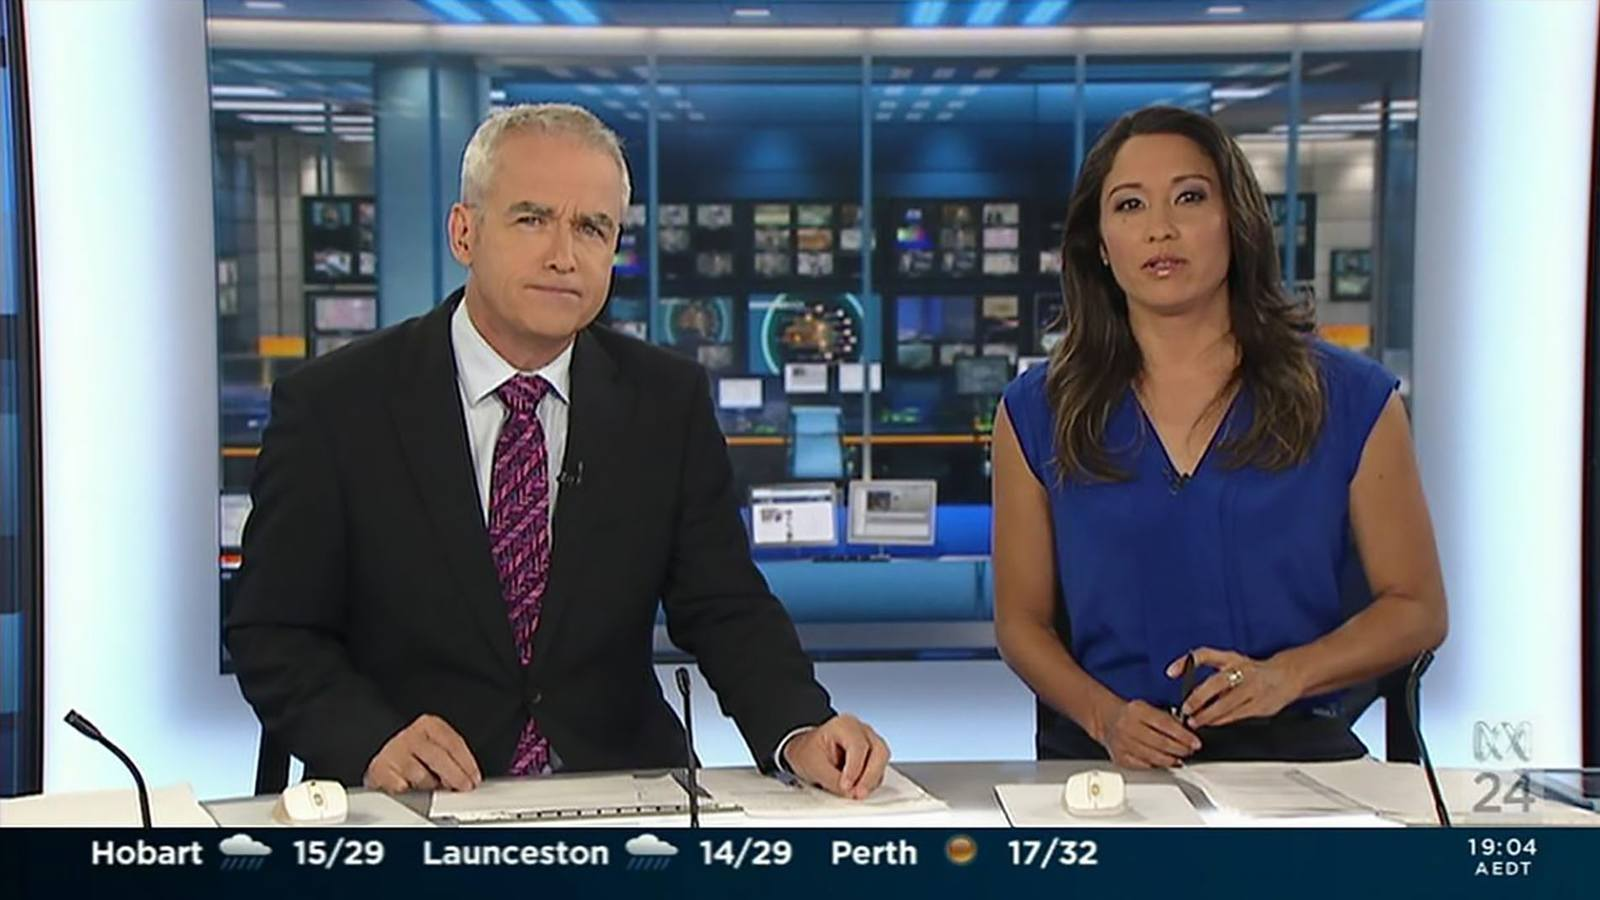 ABC News 24 - Digital backdrops designed and prepared by